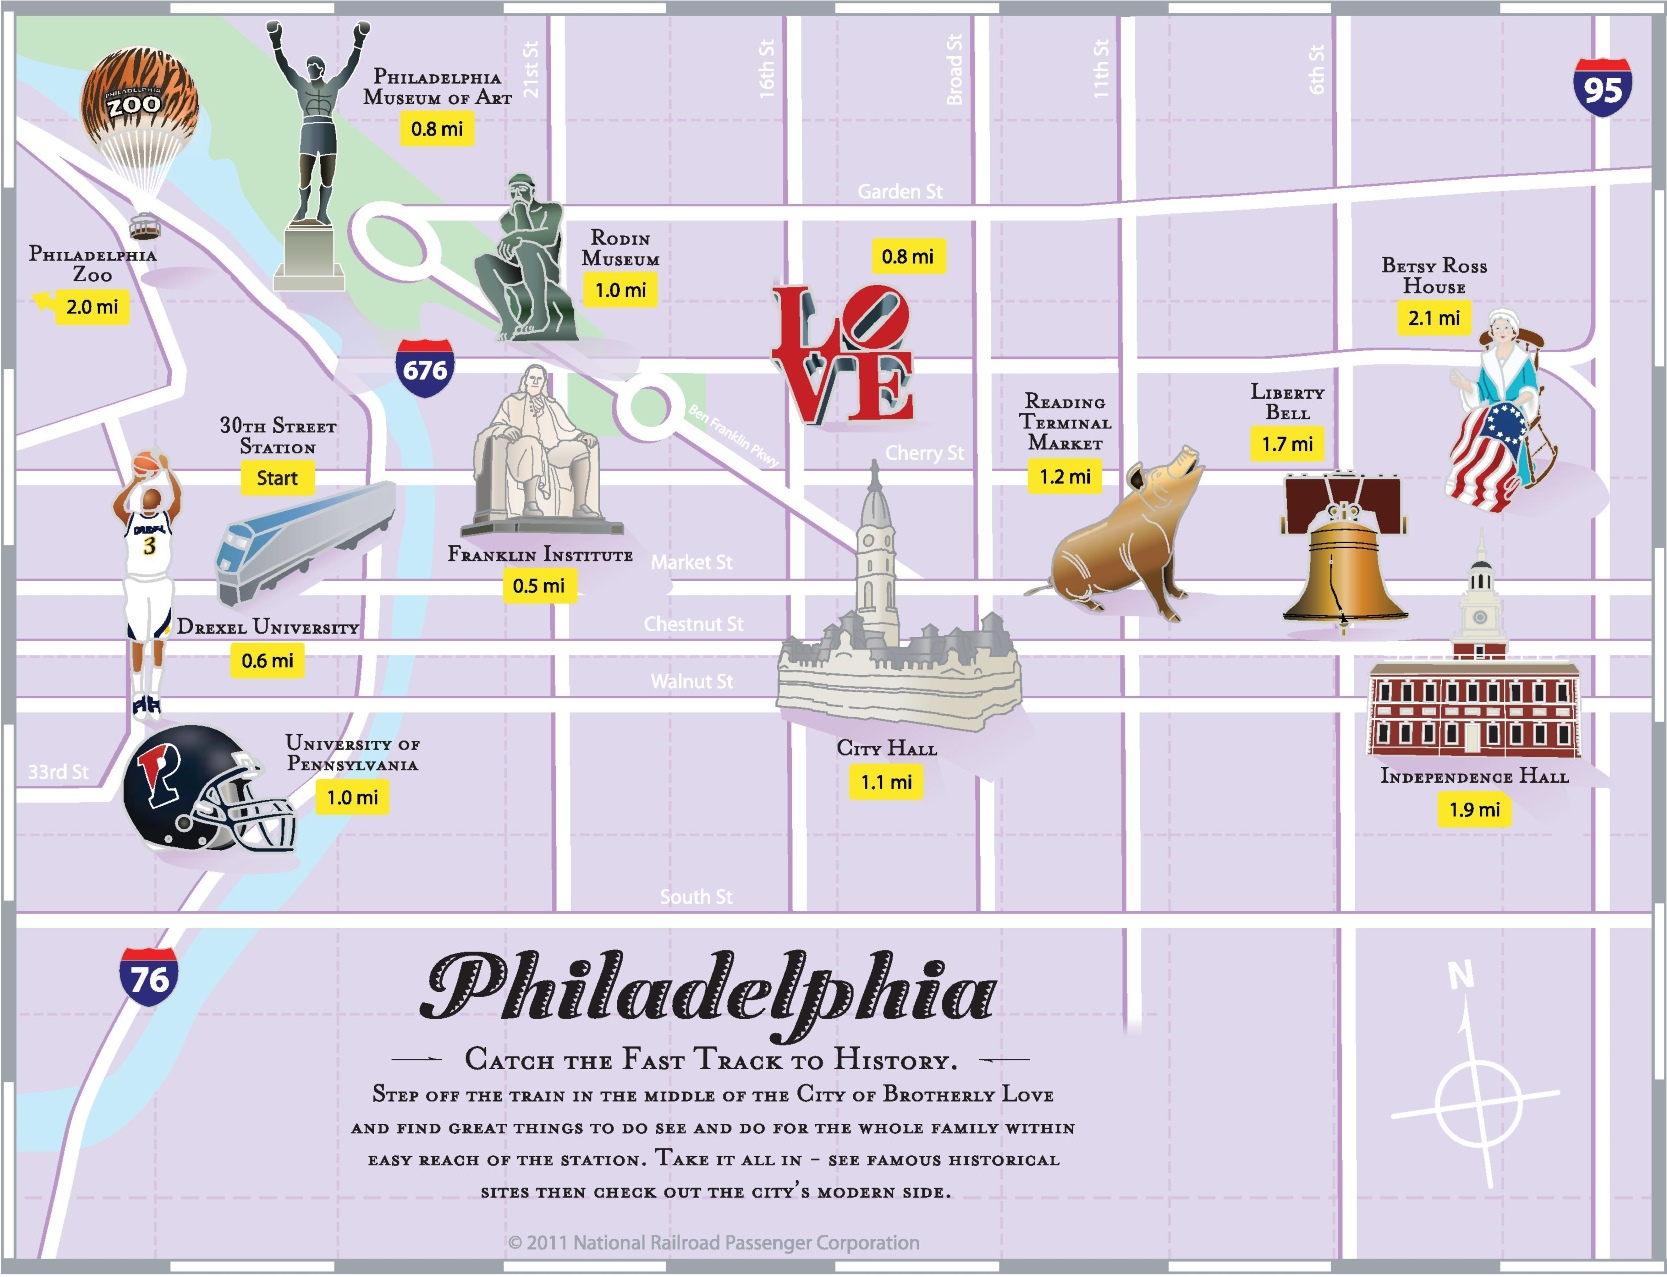 Philadelphia tourist attractions map – Houston Tourist Attractions Map